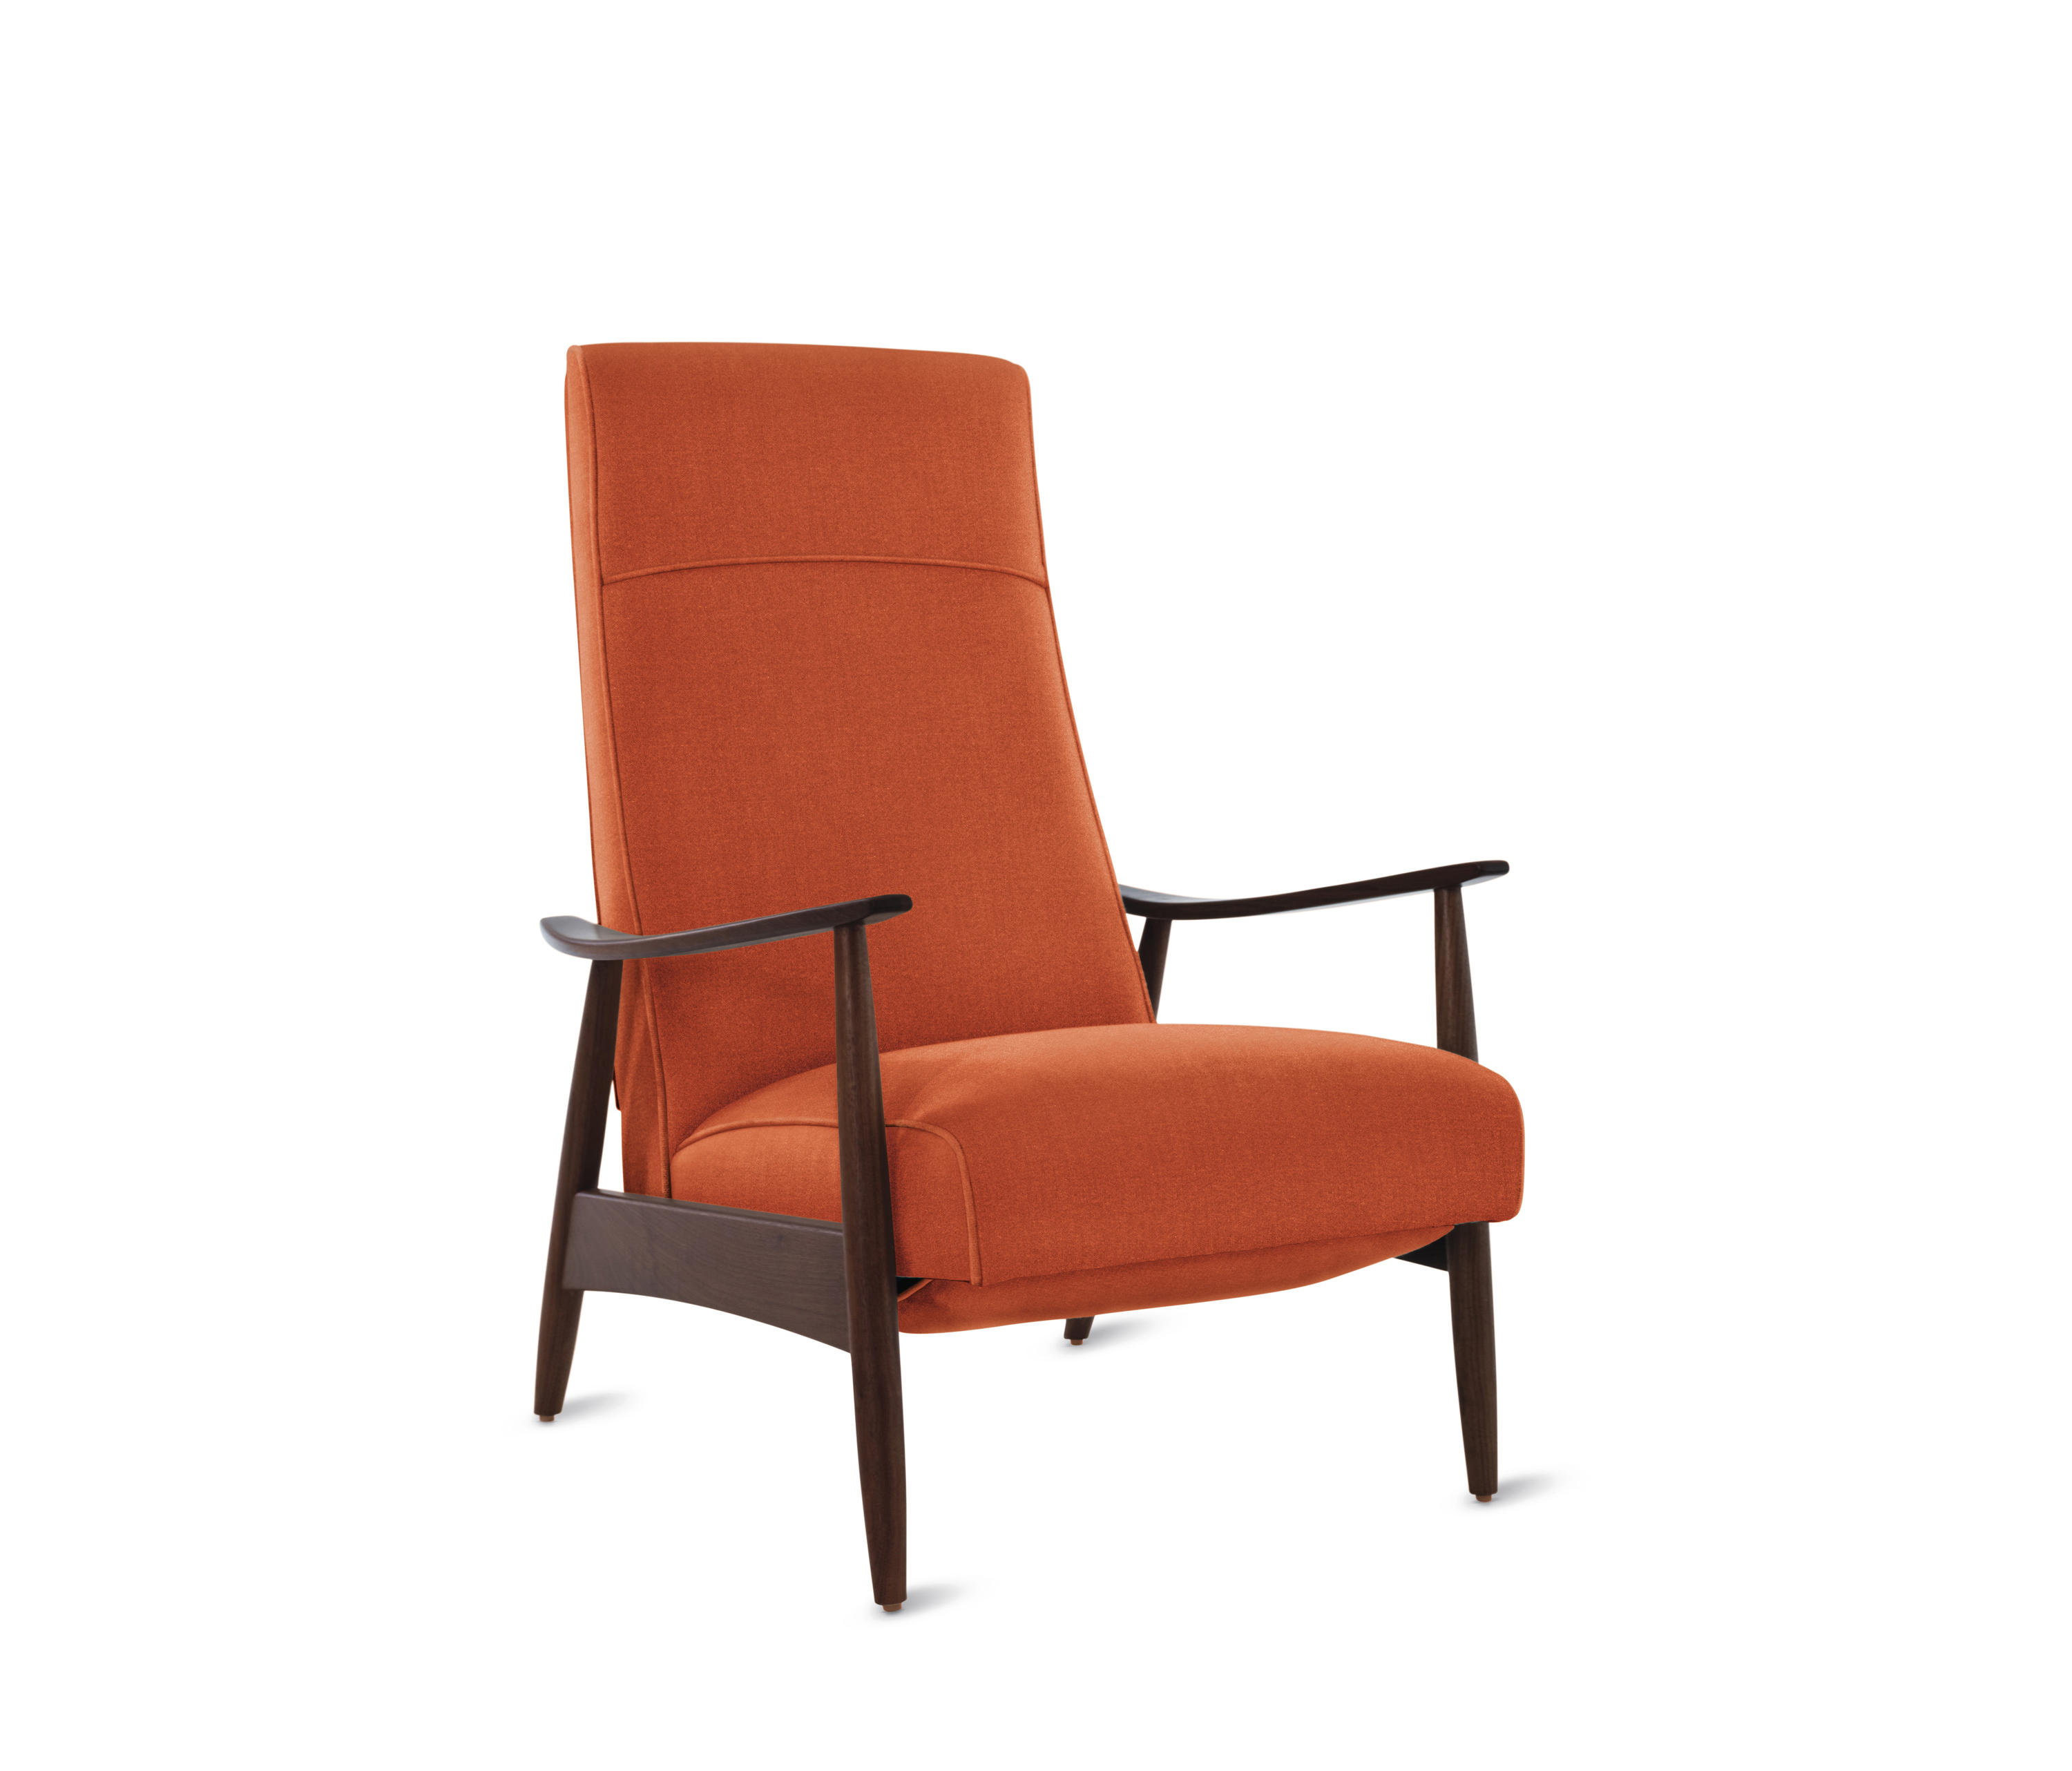 Milo Baughman Recliner 74 in Fabric by Design Within Reach | Recliners ...  sc 1 st  Architonic : baughman recliner - islam-shia.org